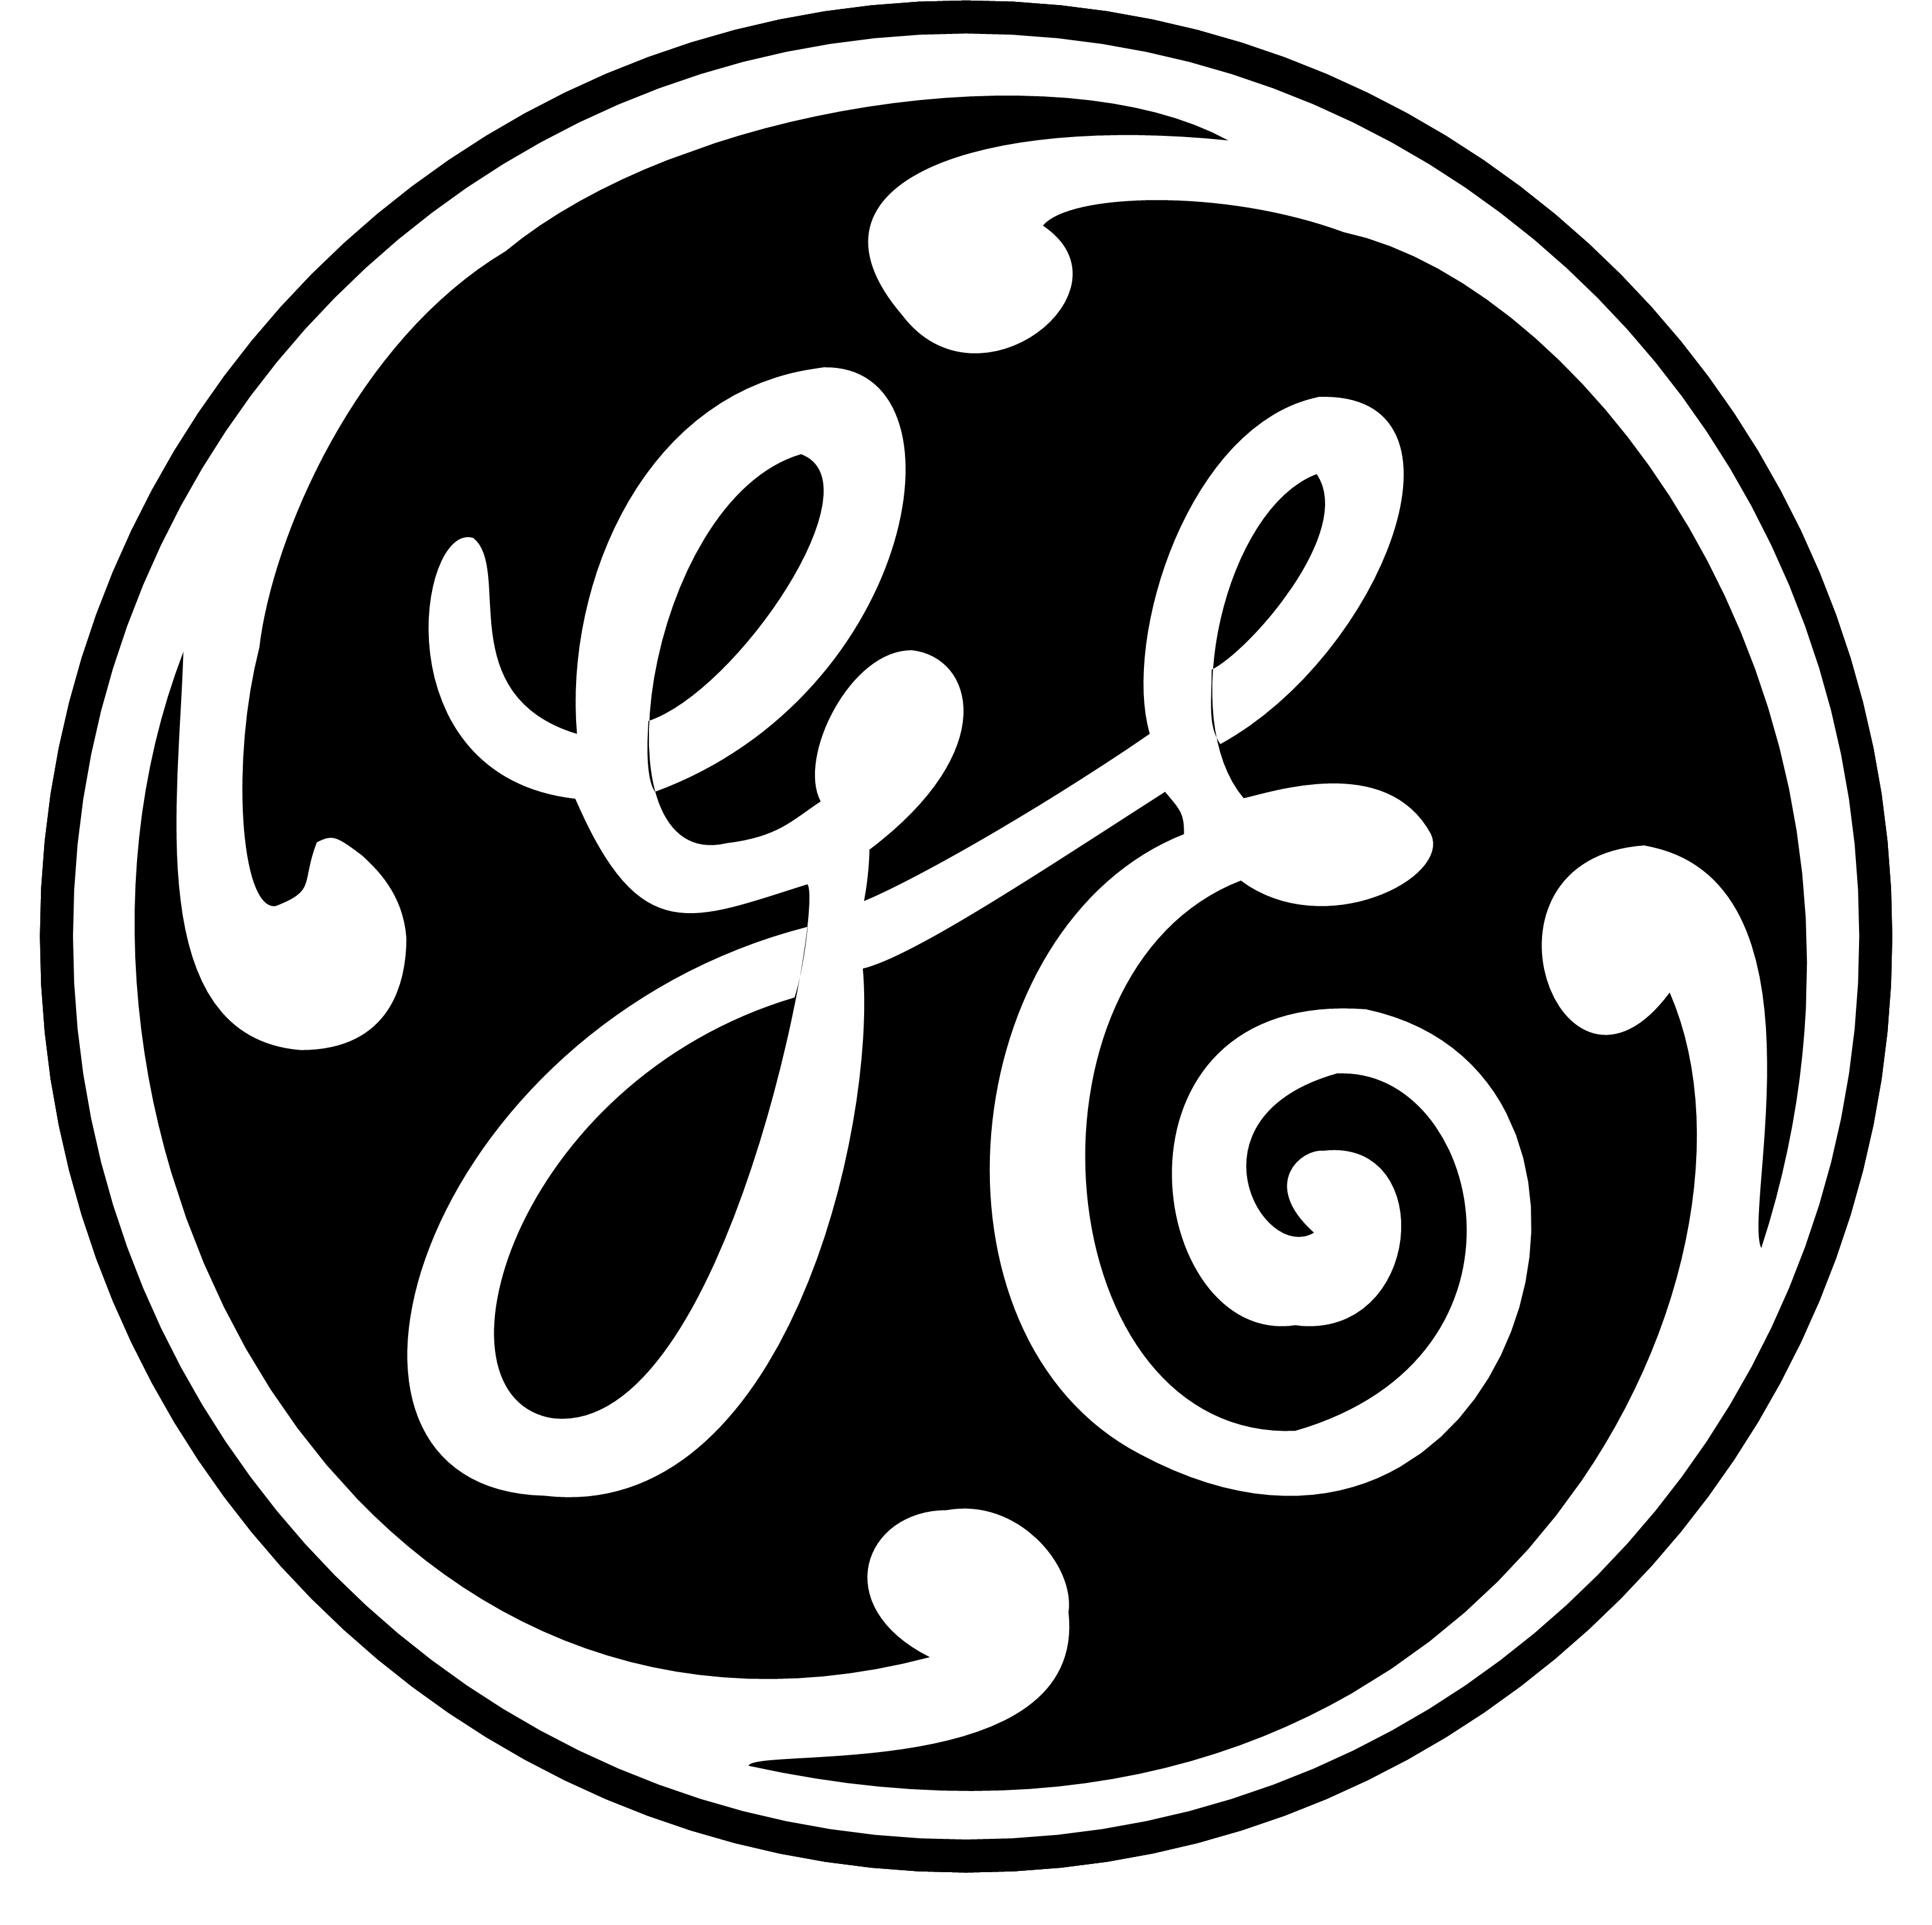 General Electric Logopedia The Logo And Branding Site